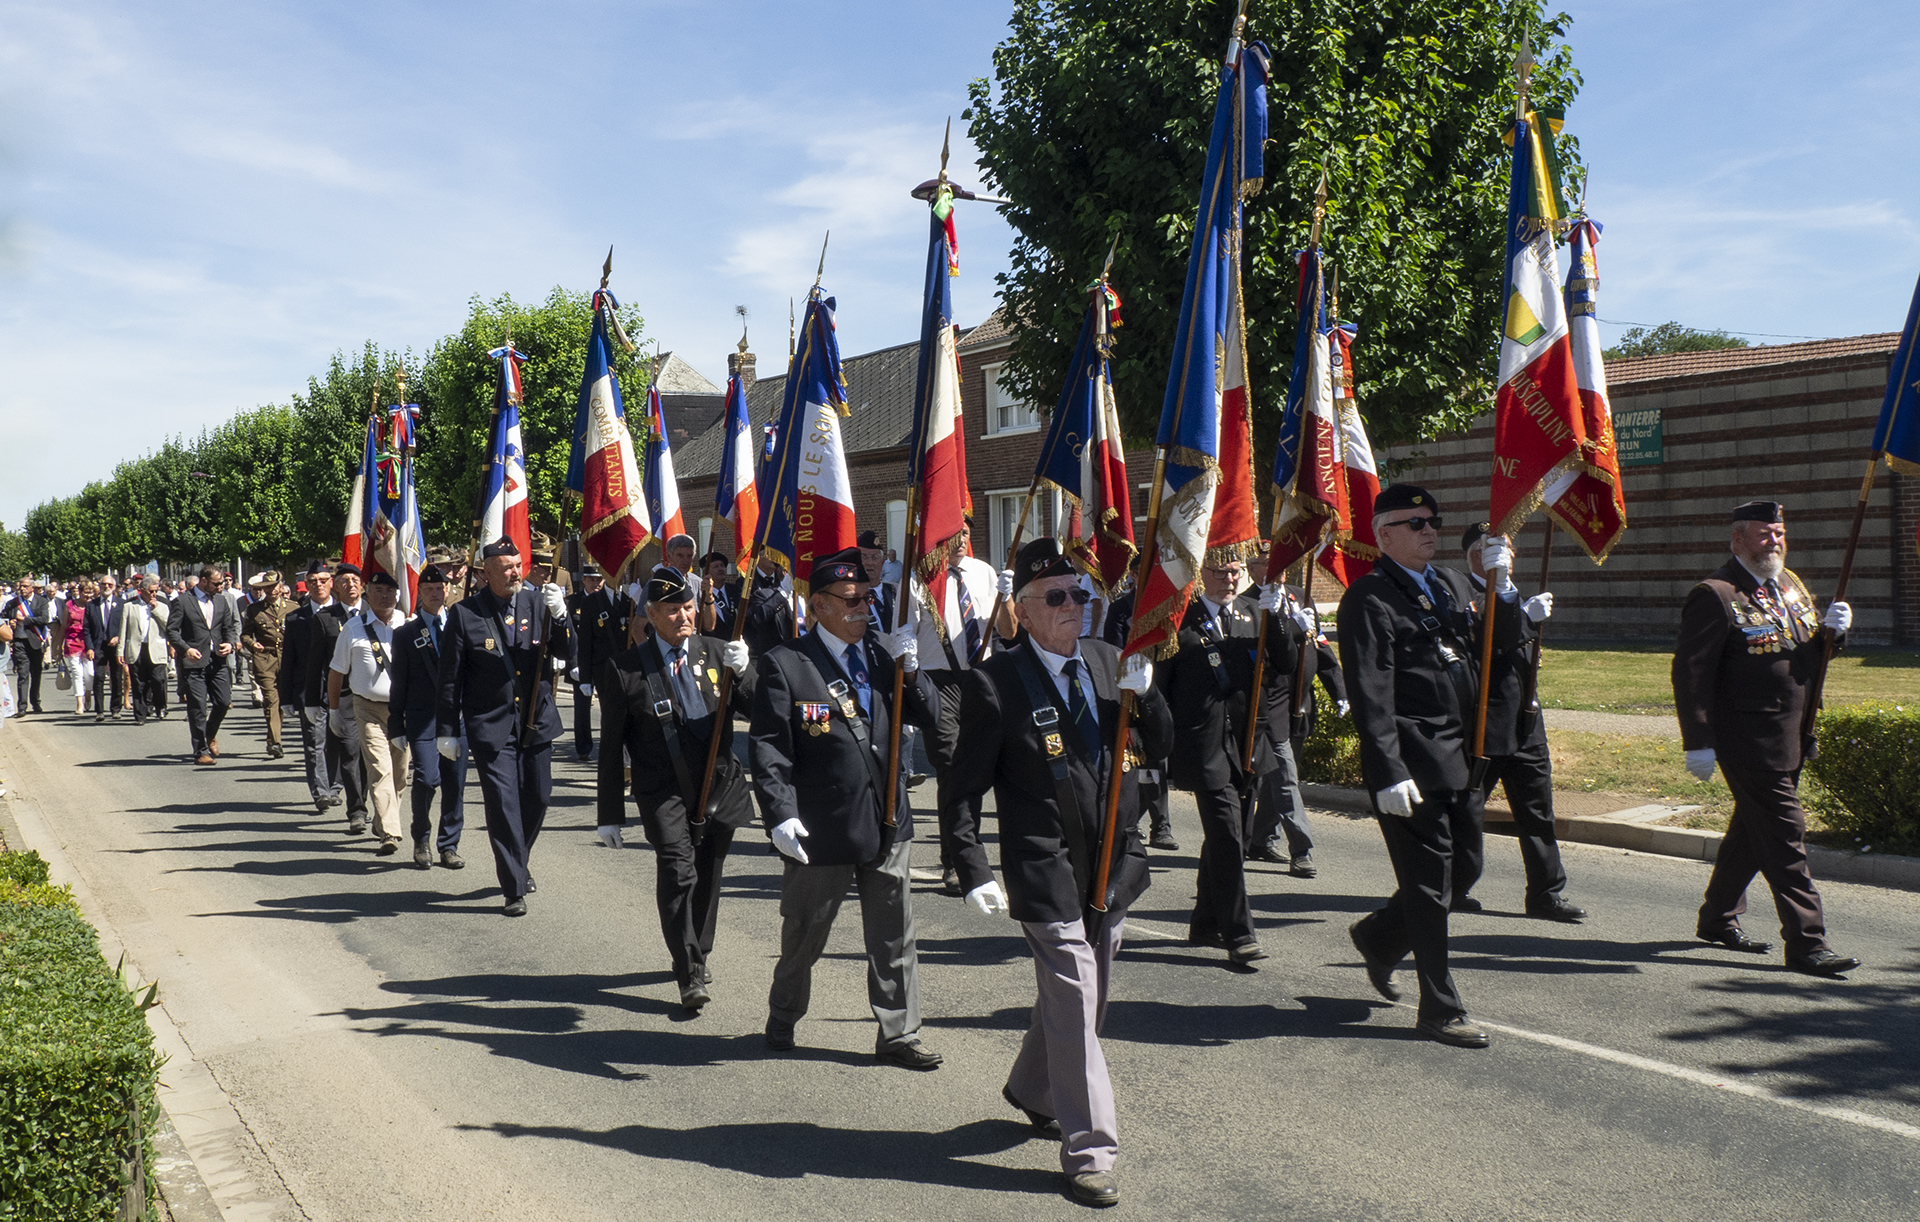 Parade through the village of Harbonnières to the next event of the day.